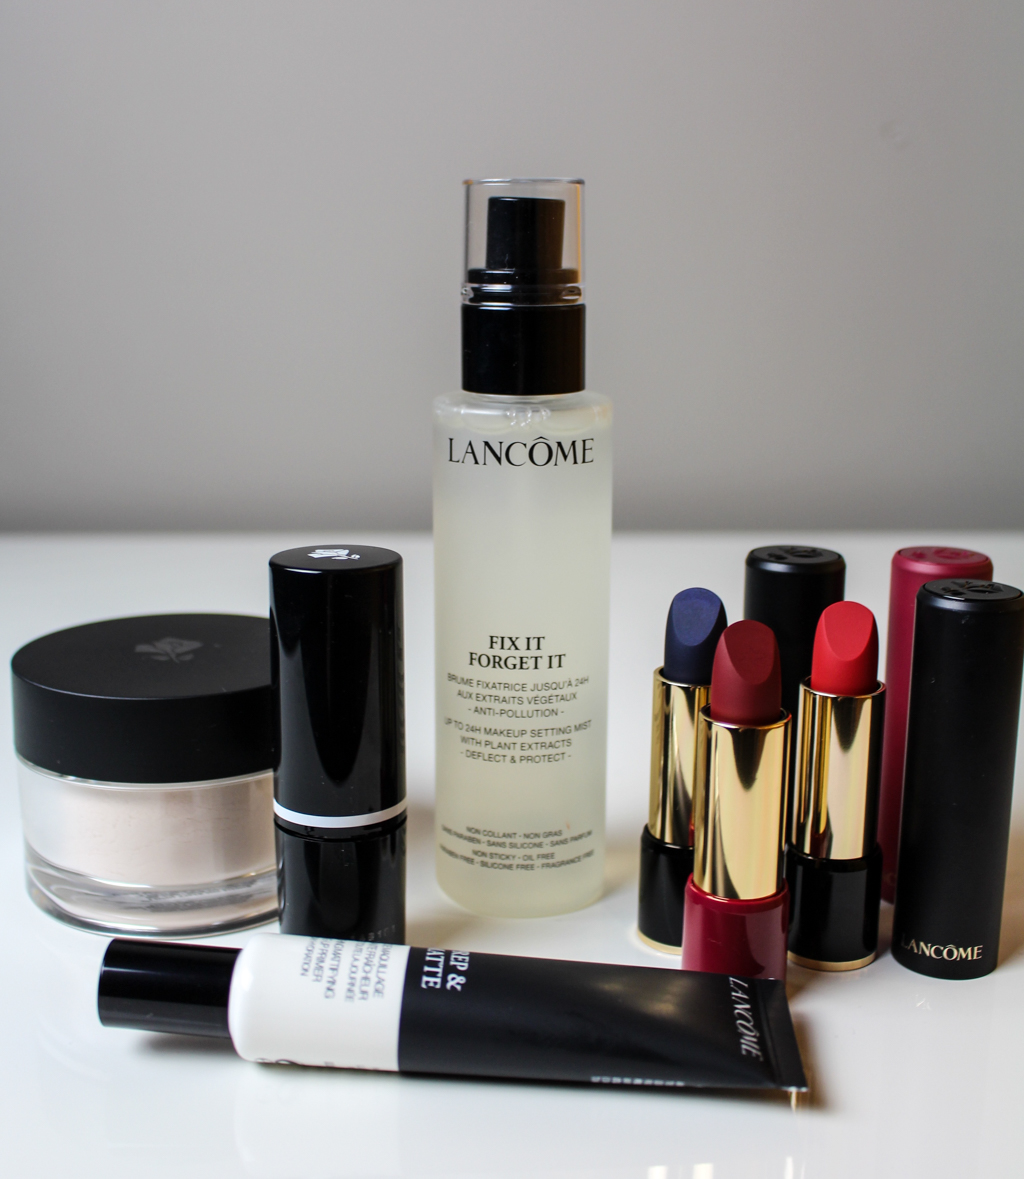 Lancôme review